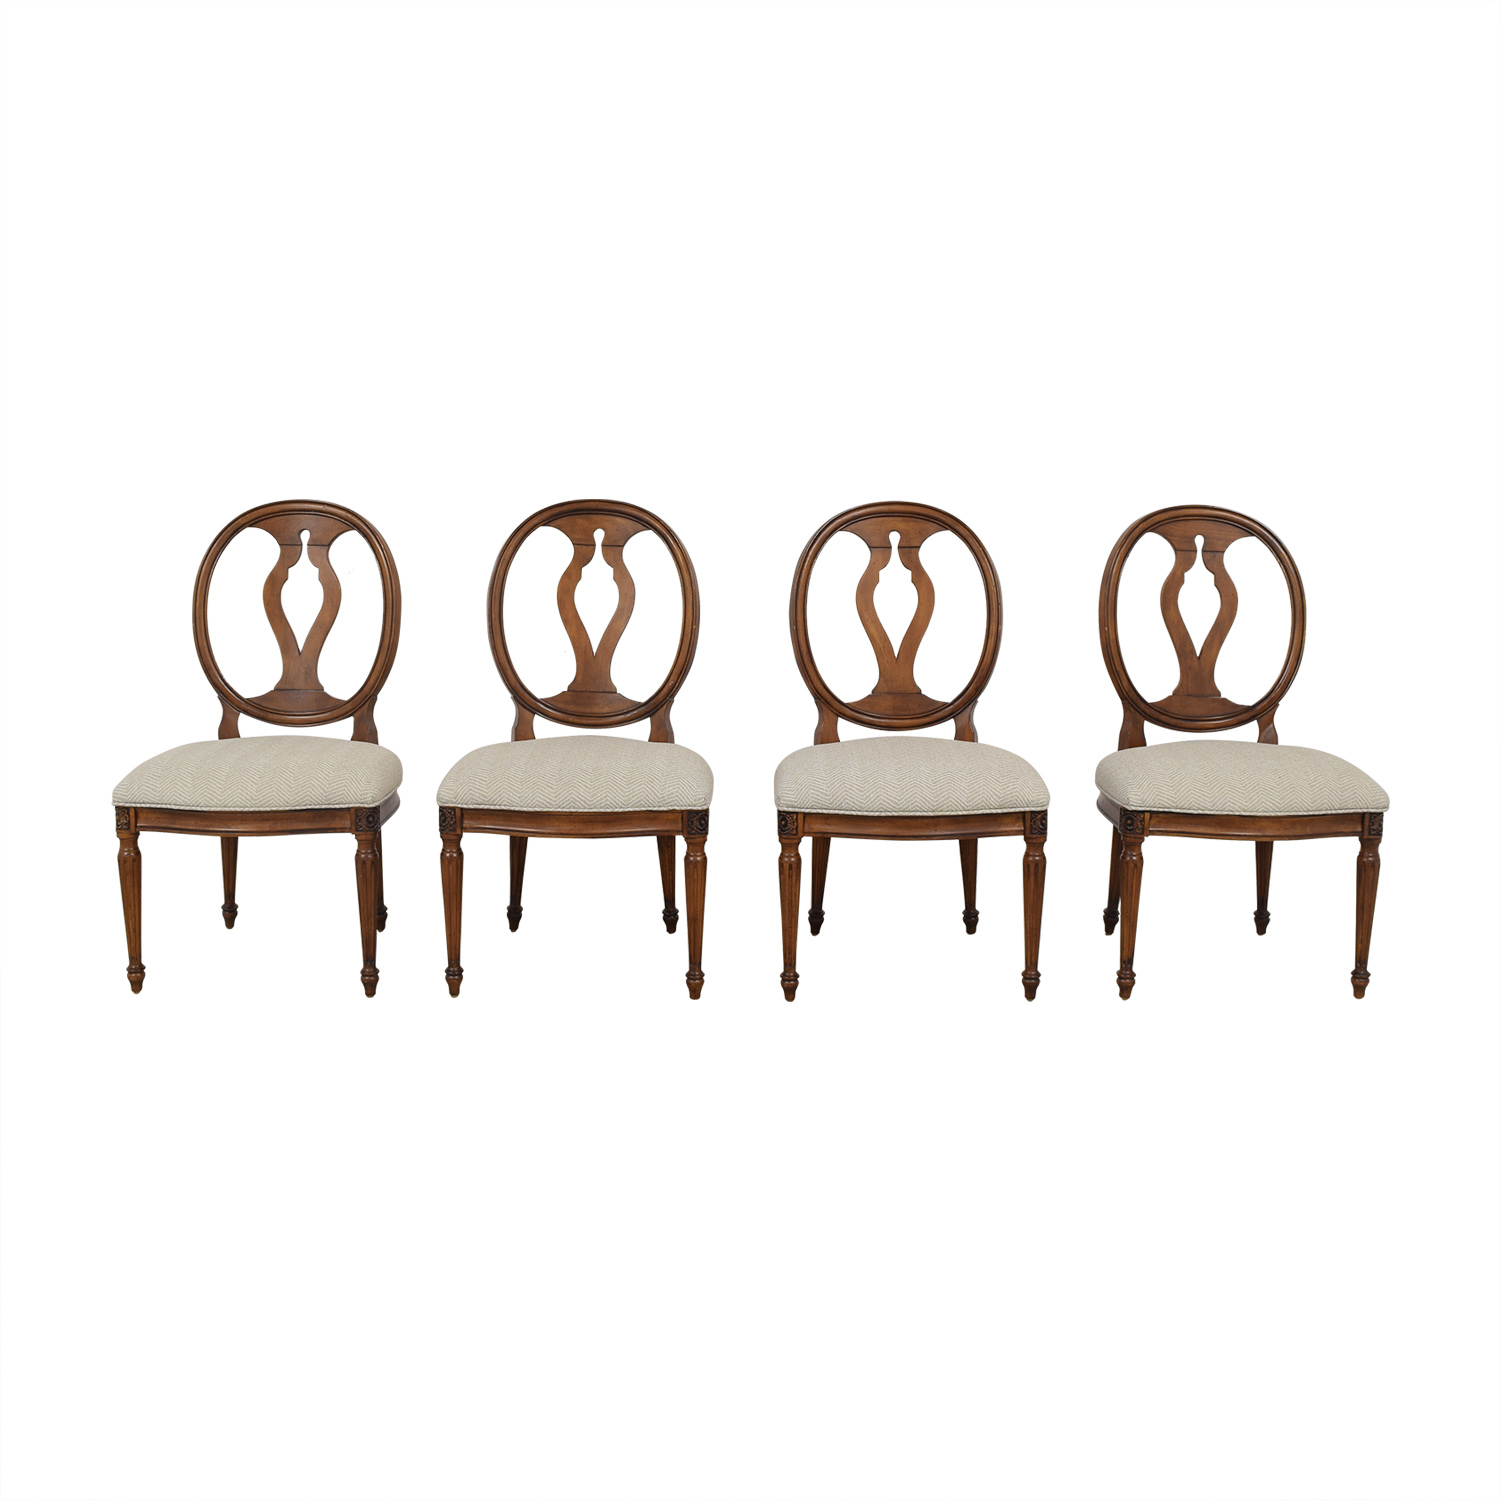 shop Ethan Allen Margaux Dining Chairs Ethan Allen Dining Chairs